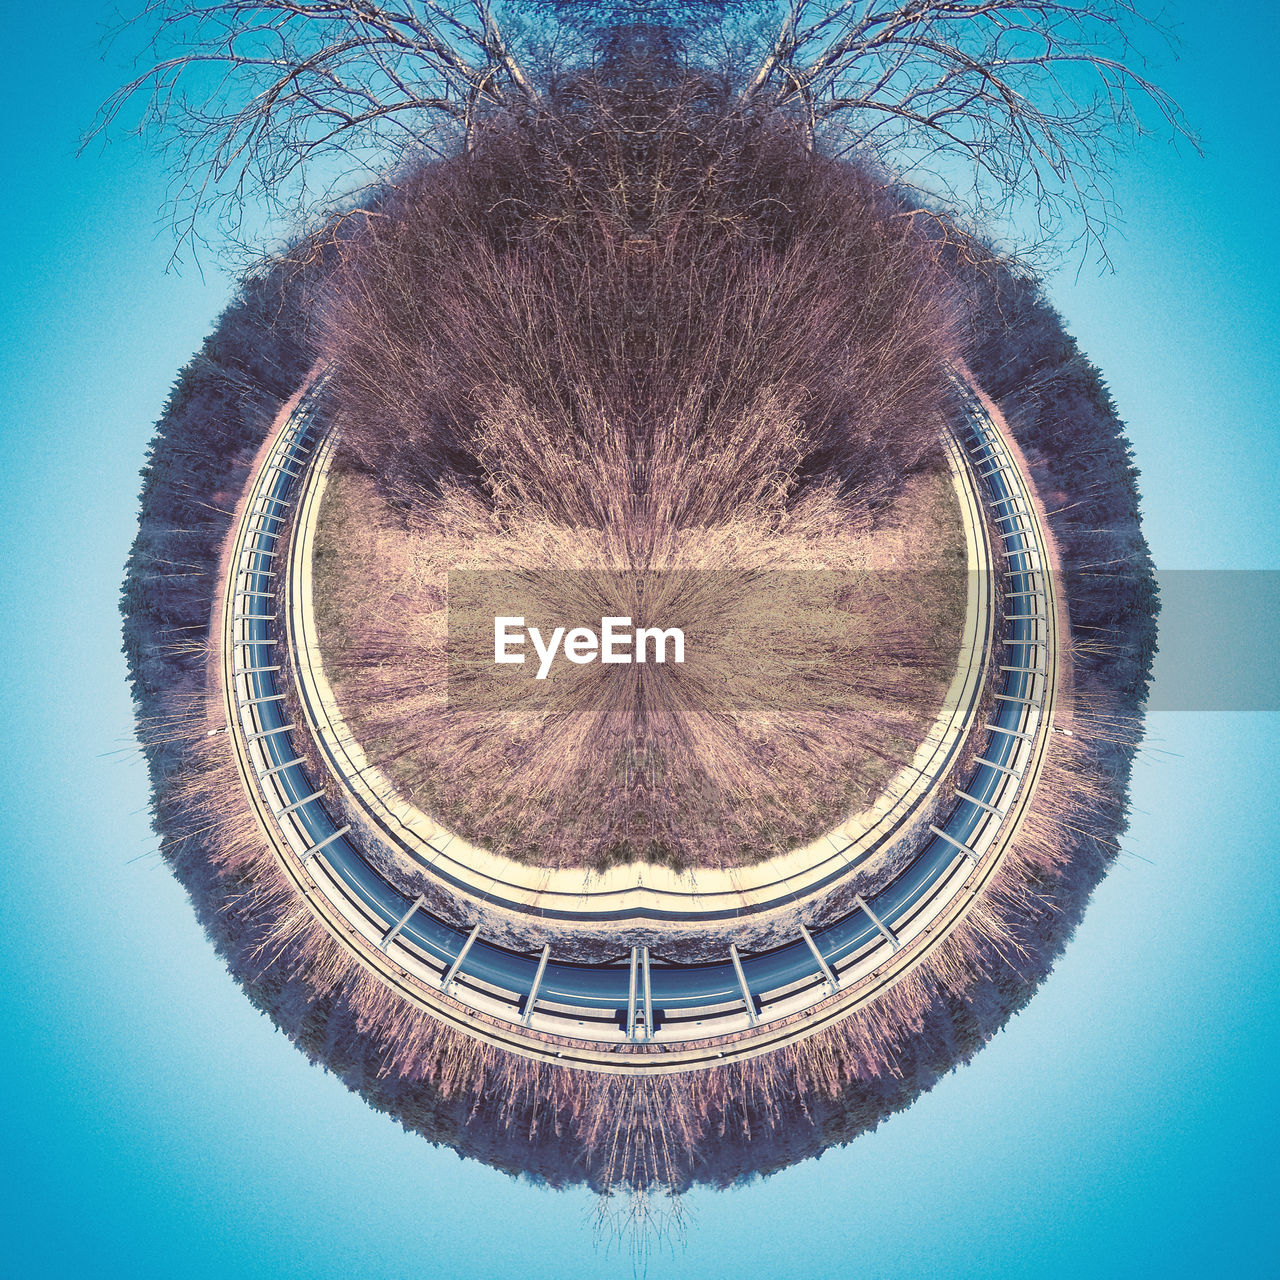 geometric shape, circle, shape, nature, architecture, sky, no people, built structure, tree, day, symmetry, digital composite, blue, plant, fish-eye lens, outdoors, low angle view, building exterior, pattern, design, blue background, directly below